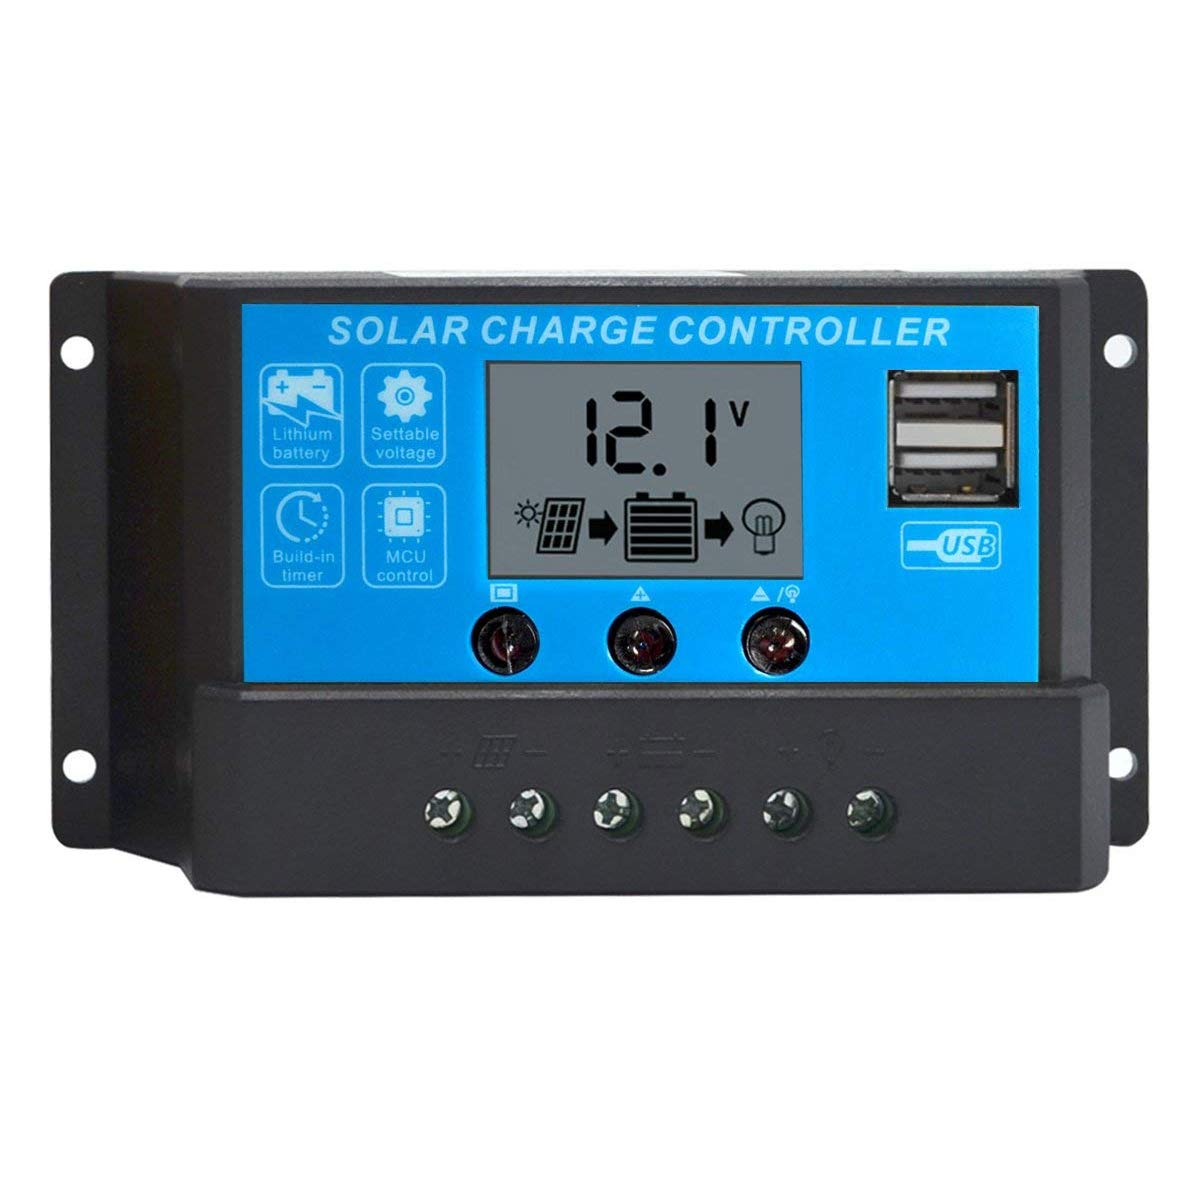 ACOPOWER 10Amp PWM Solar Charge Controller Solar Panel Battery Intelligent Regulator with USB Port LCD Display 12V/24V